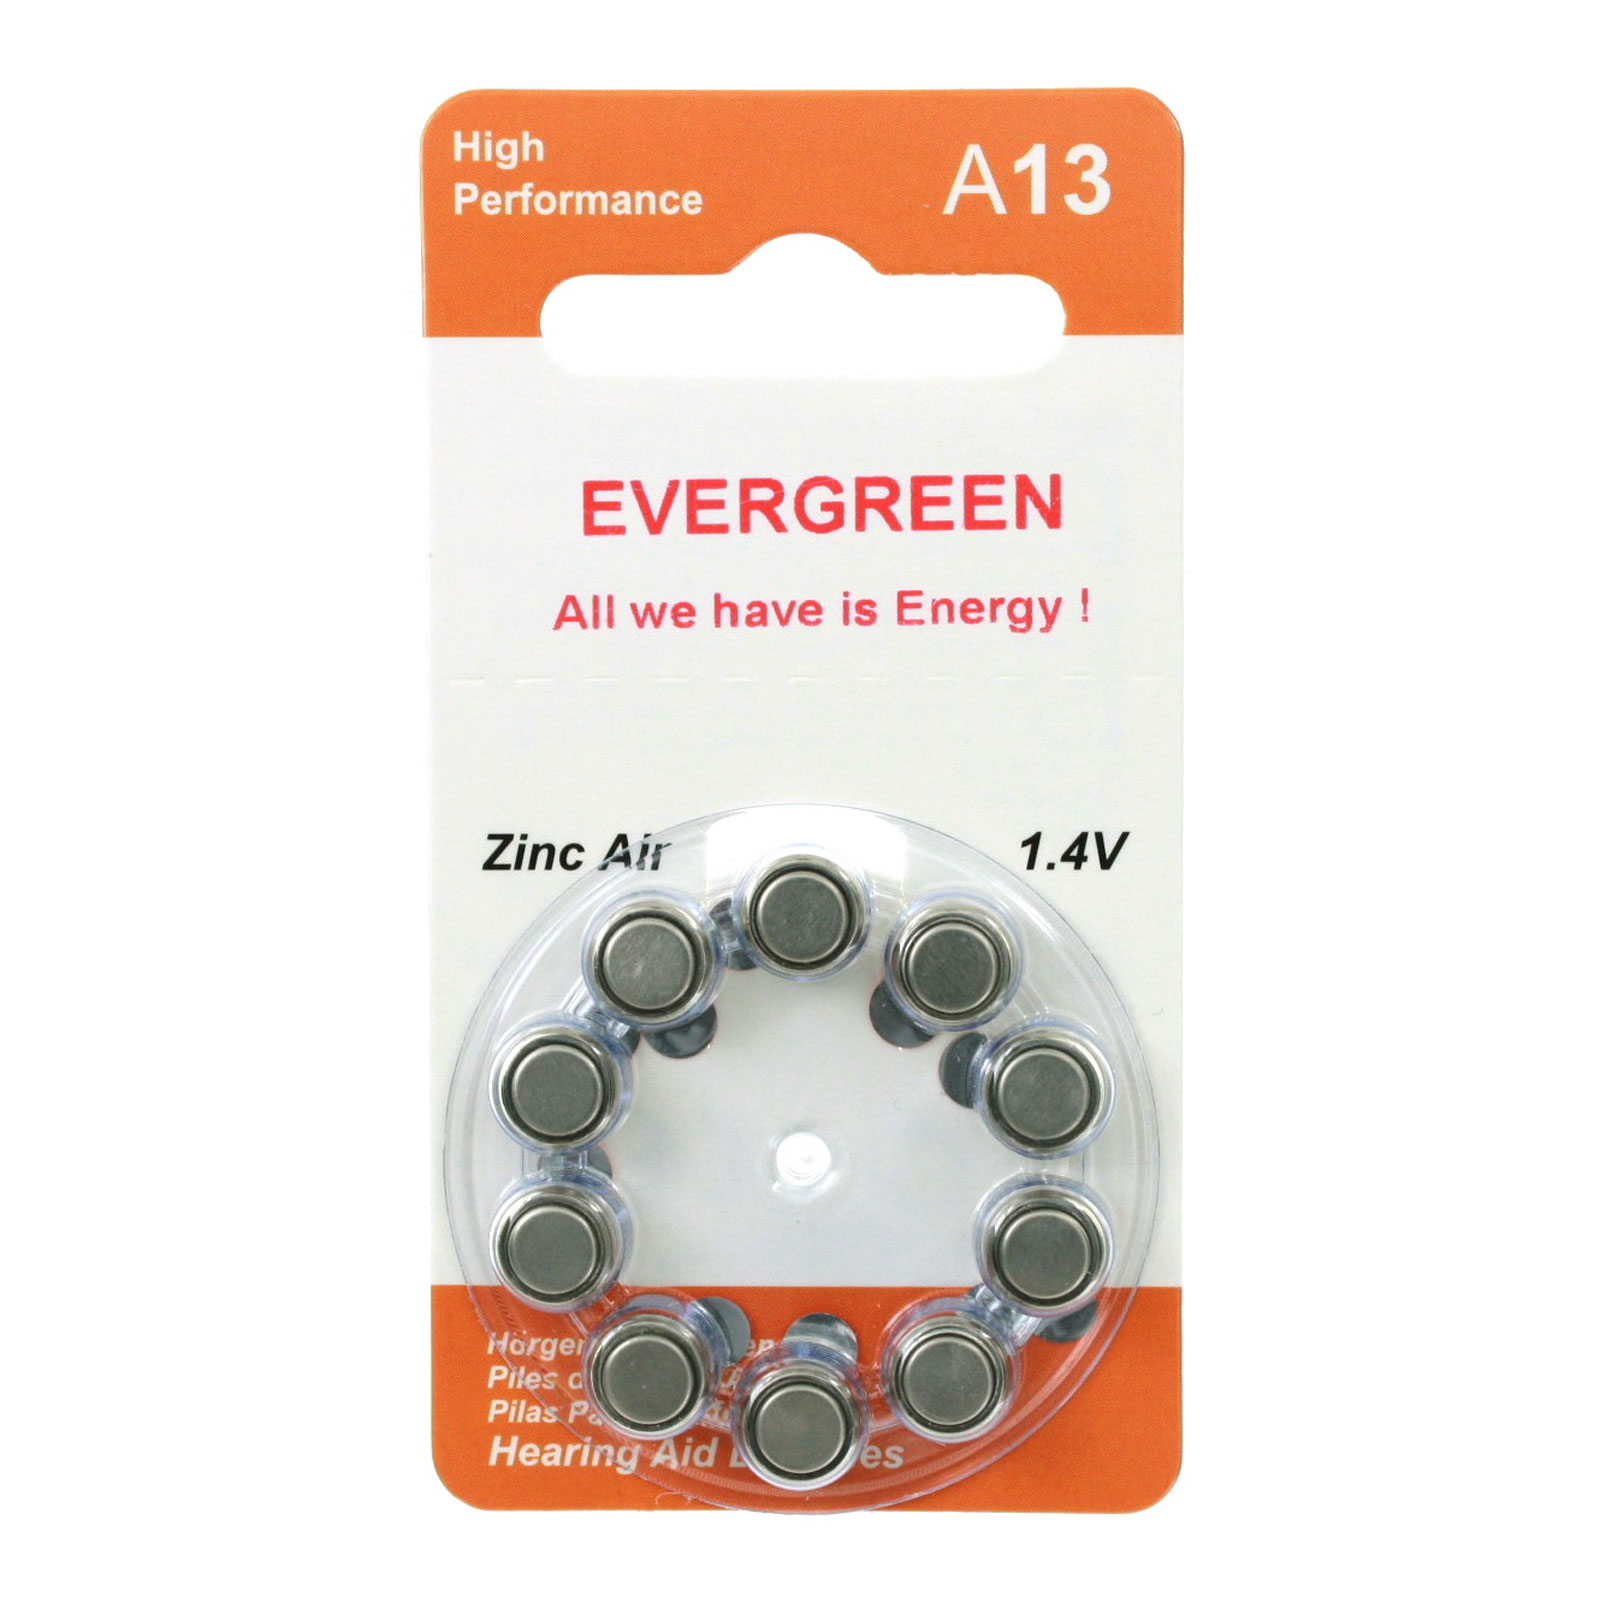 Hearing aid battery a13b10 evergreen 10pk size a13 zinc air 14v hearing aid battery a13b10 evergreen 10pk size a13 zinc air 14v fandeluxe Choice Image